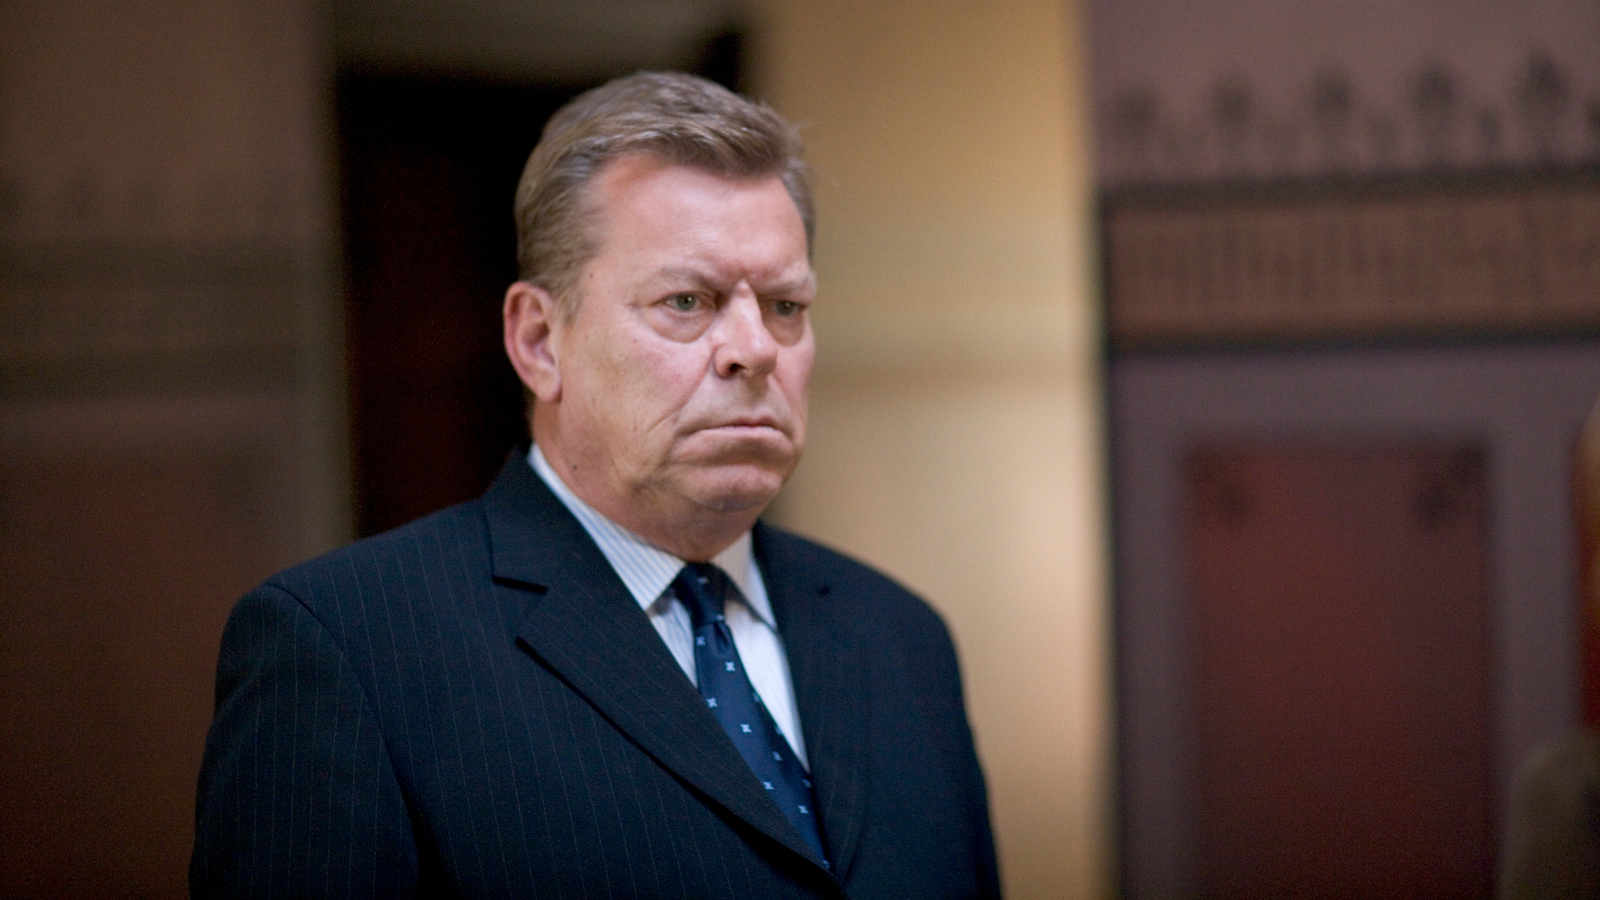 warren clarke cause of death